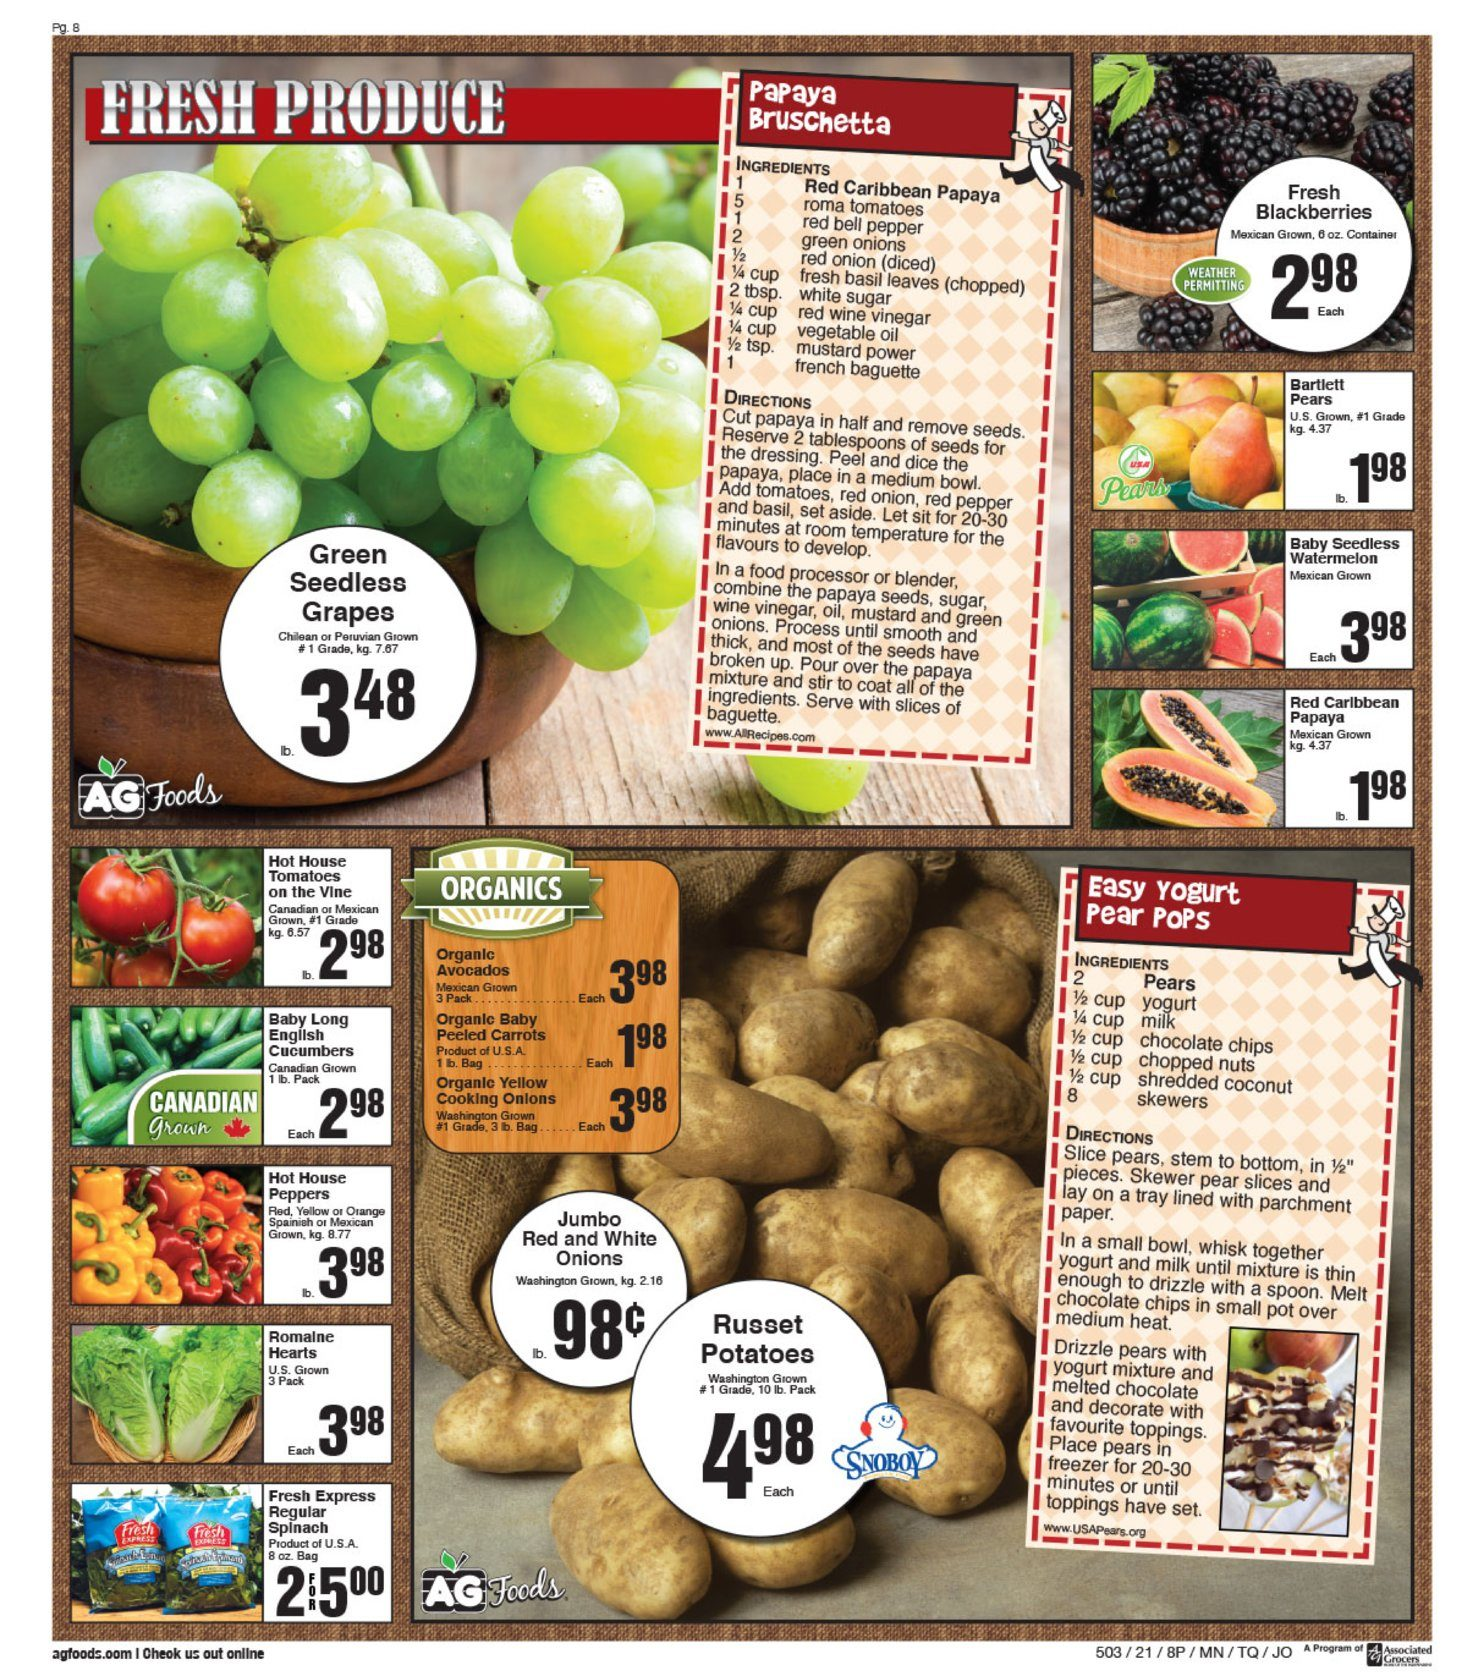 AG Foods - Weekly Flyer Specials - Page 8